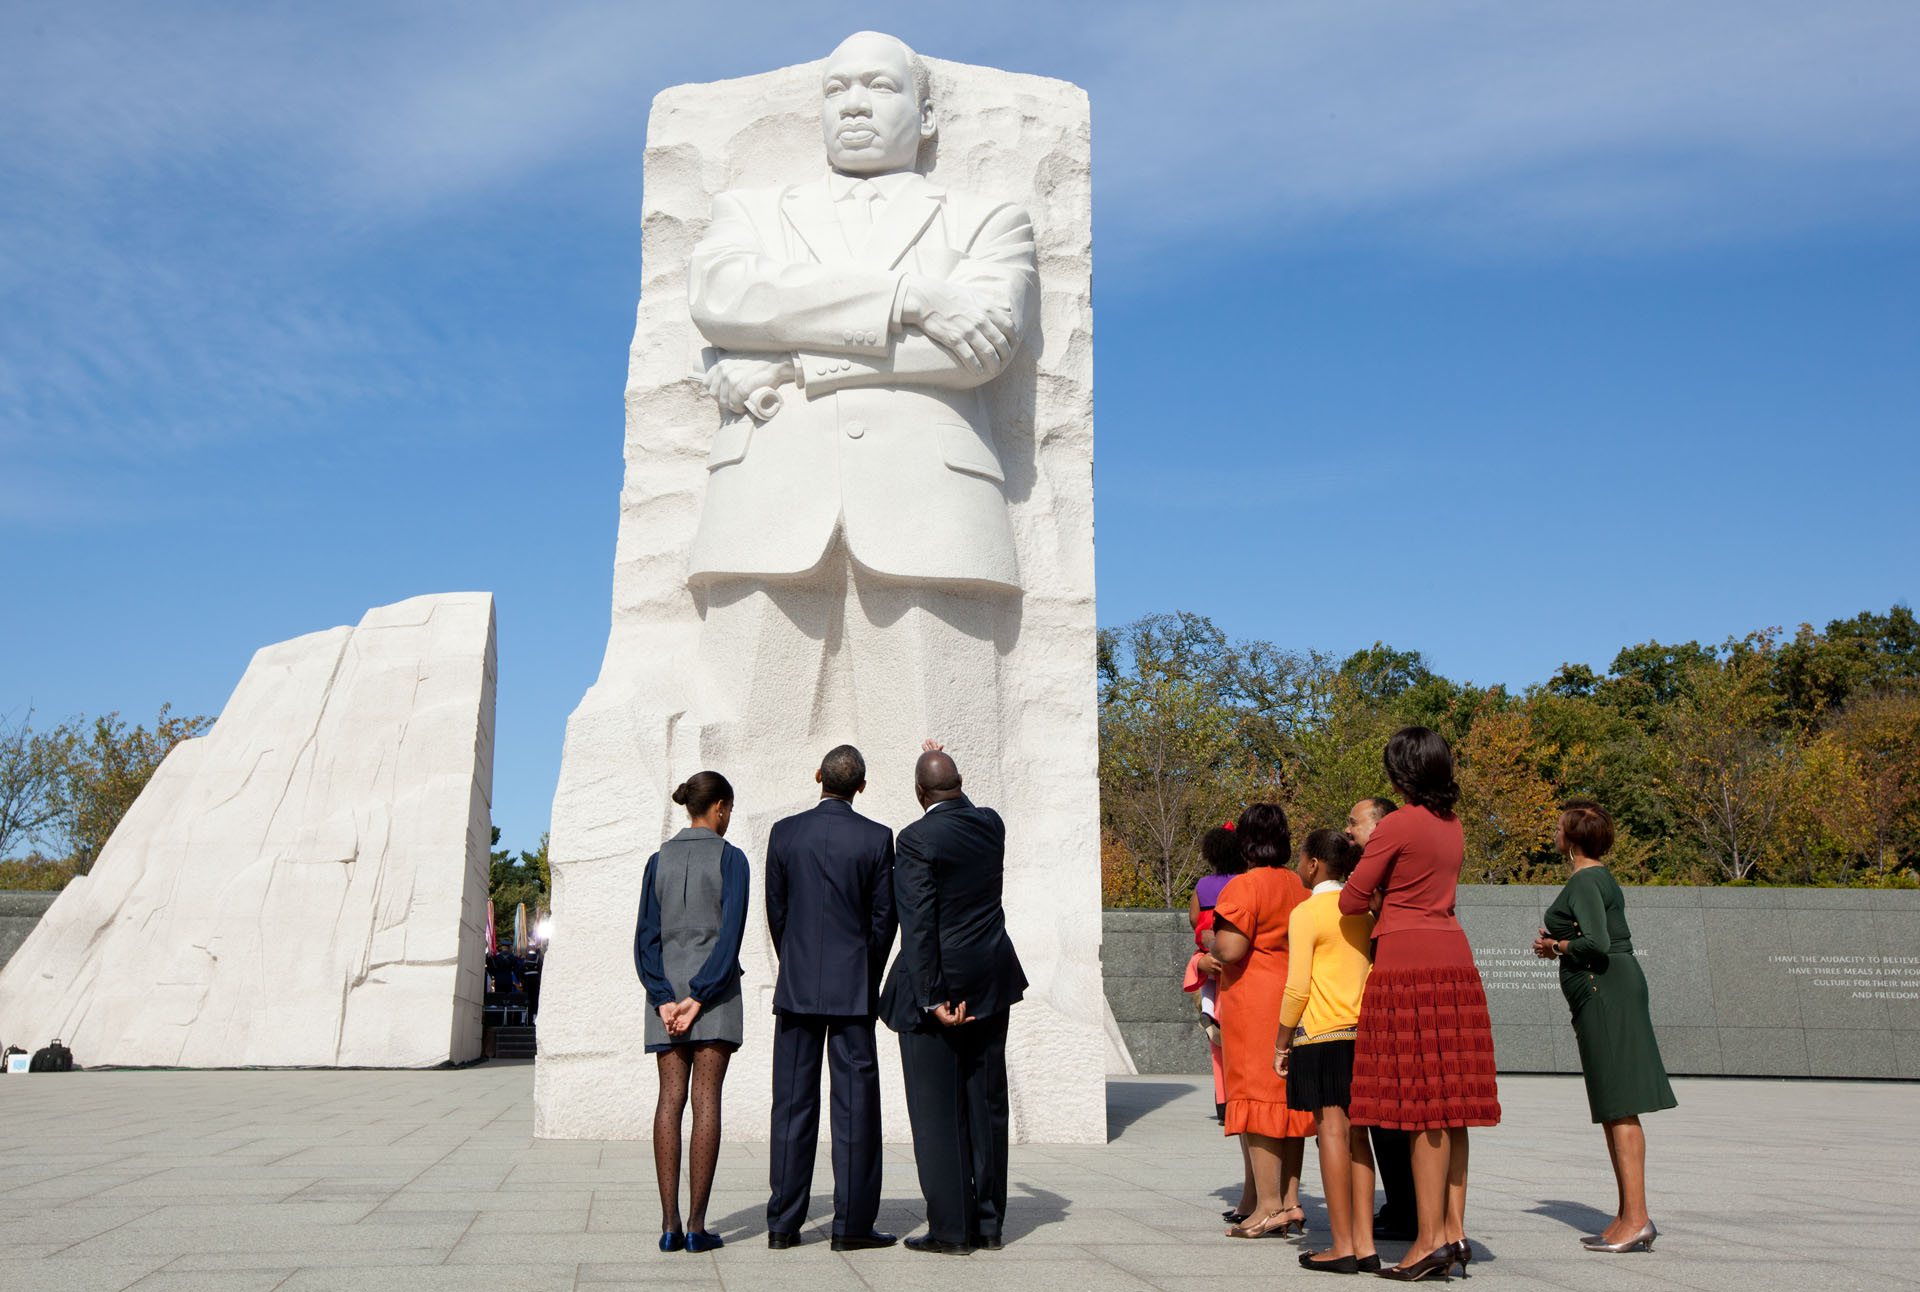 President Obama and the First Family tour the Martin Luther King Jr. National Memorial